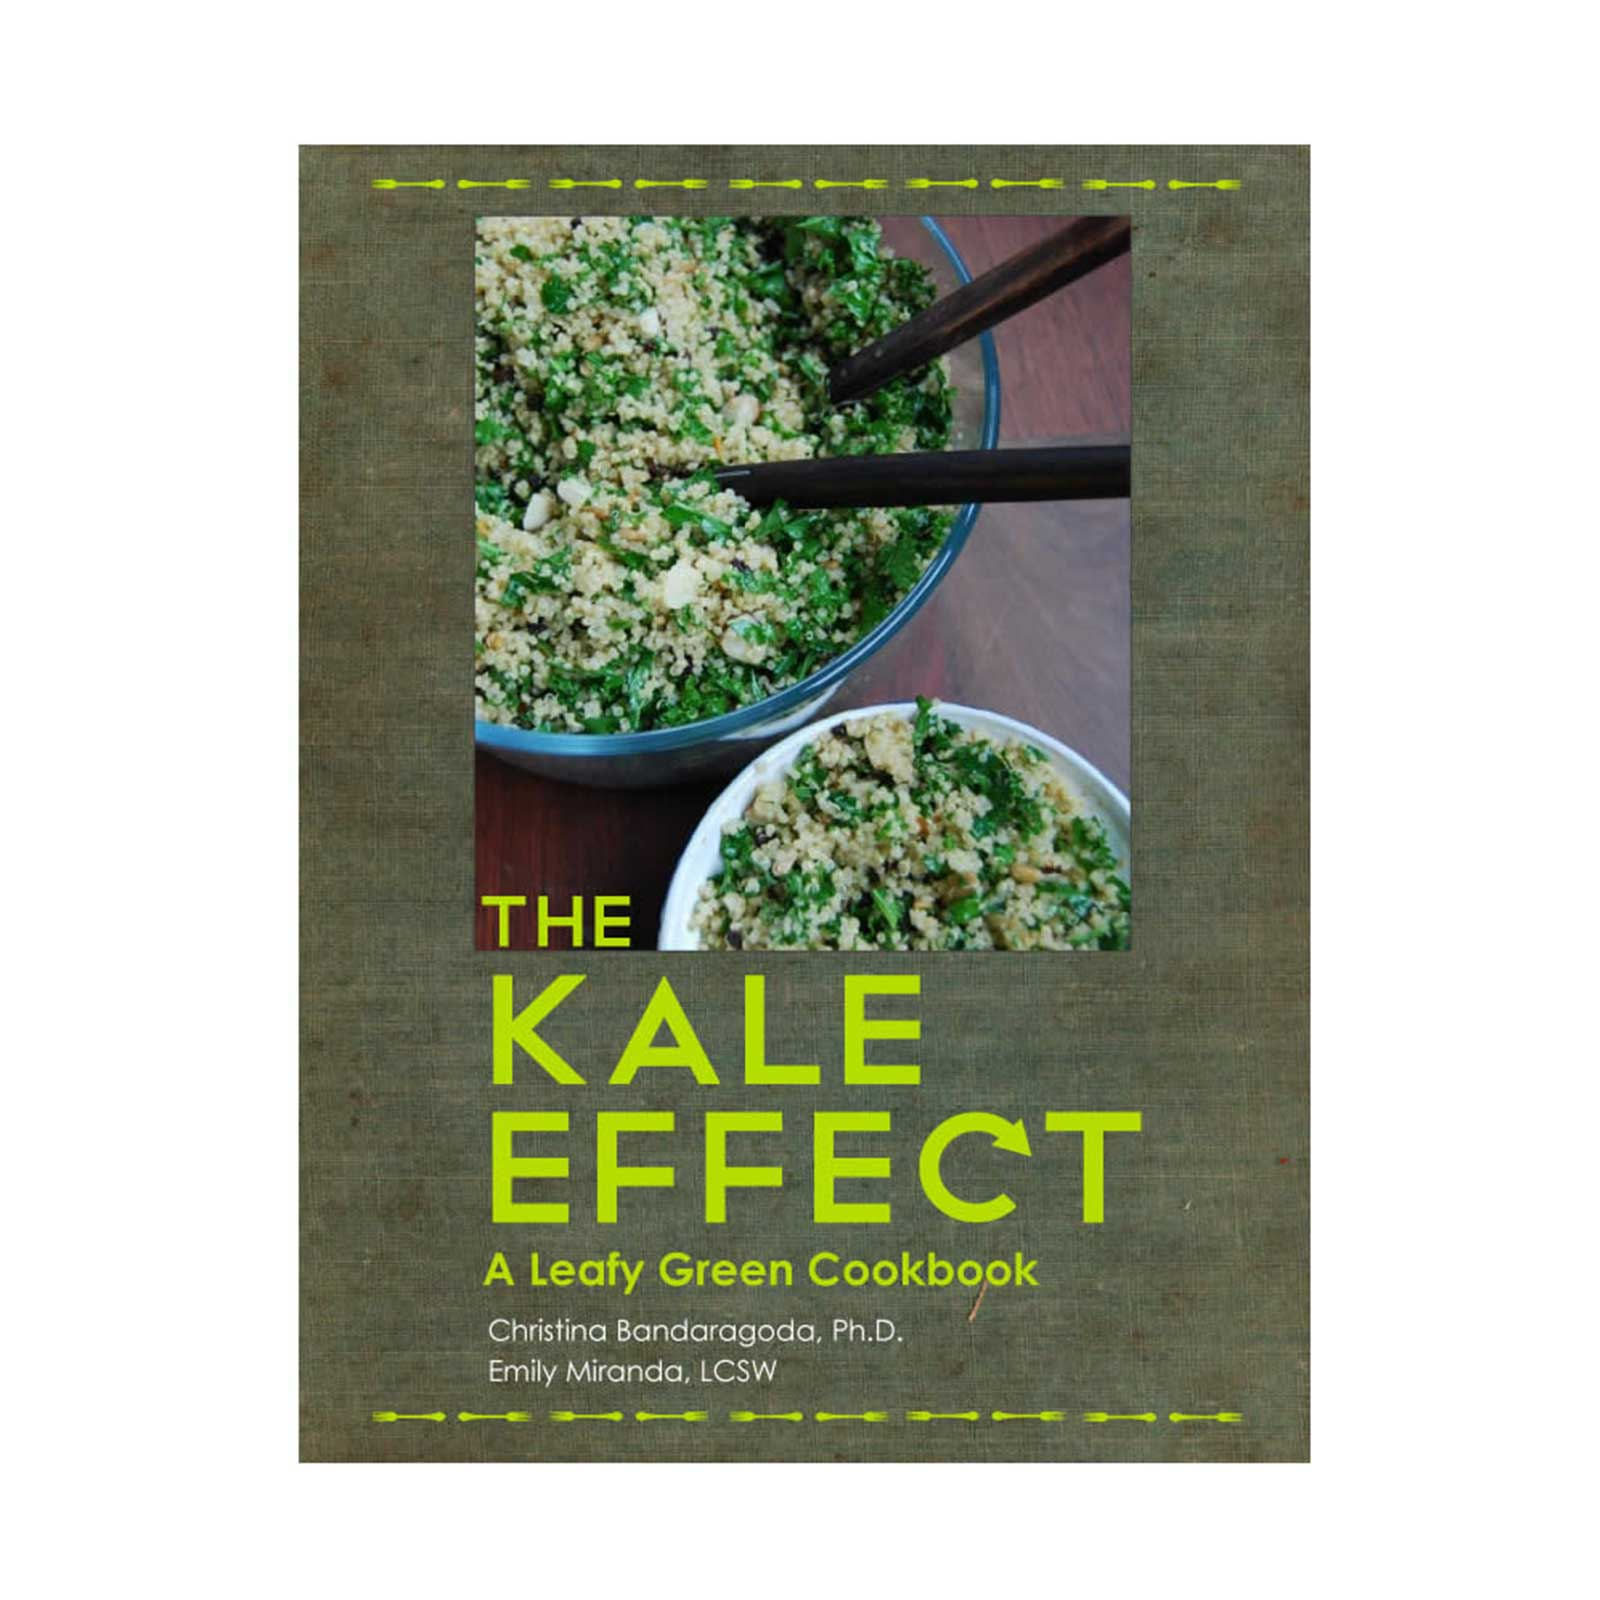 The Kale Effect - A Leafy Green Cookbook - Book